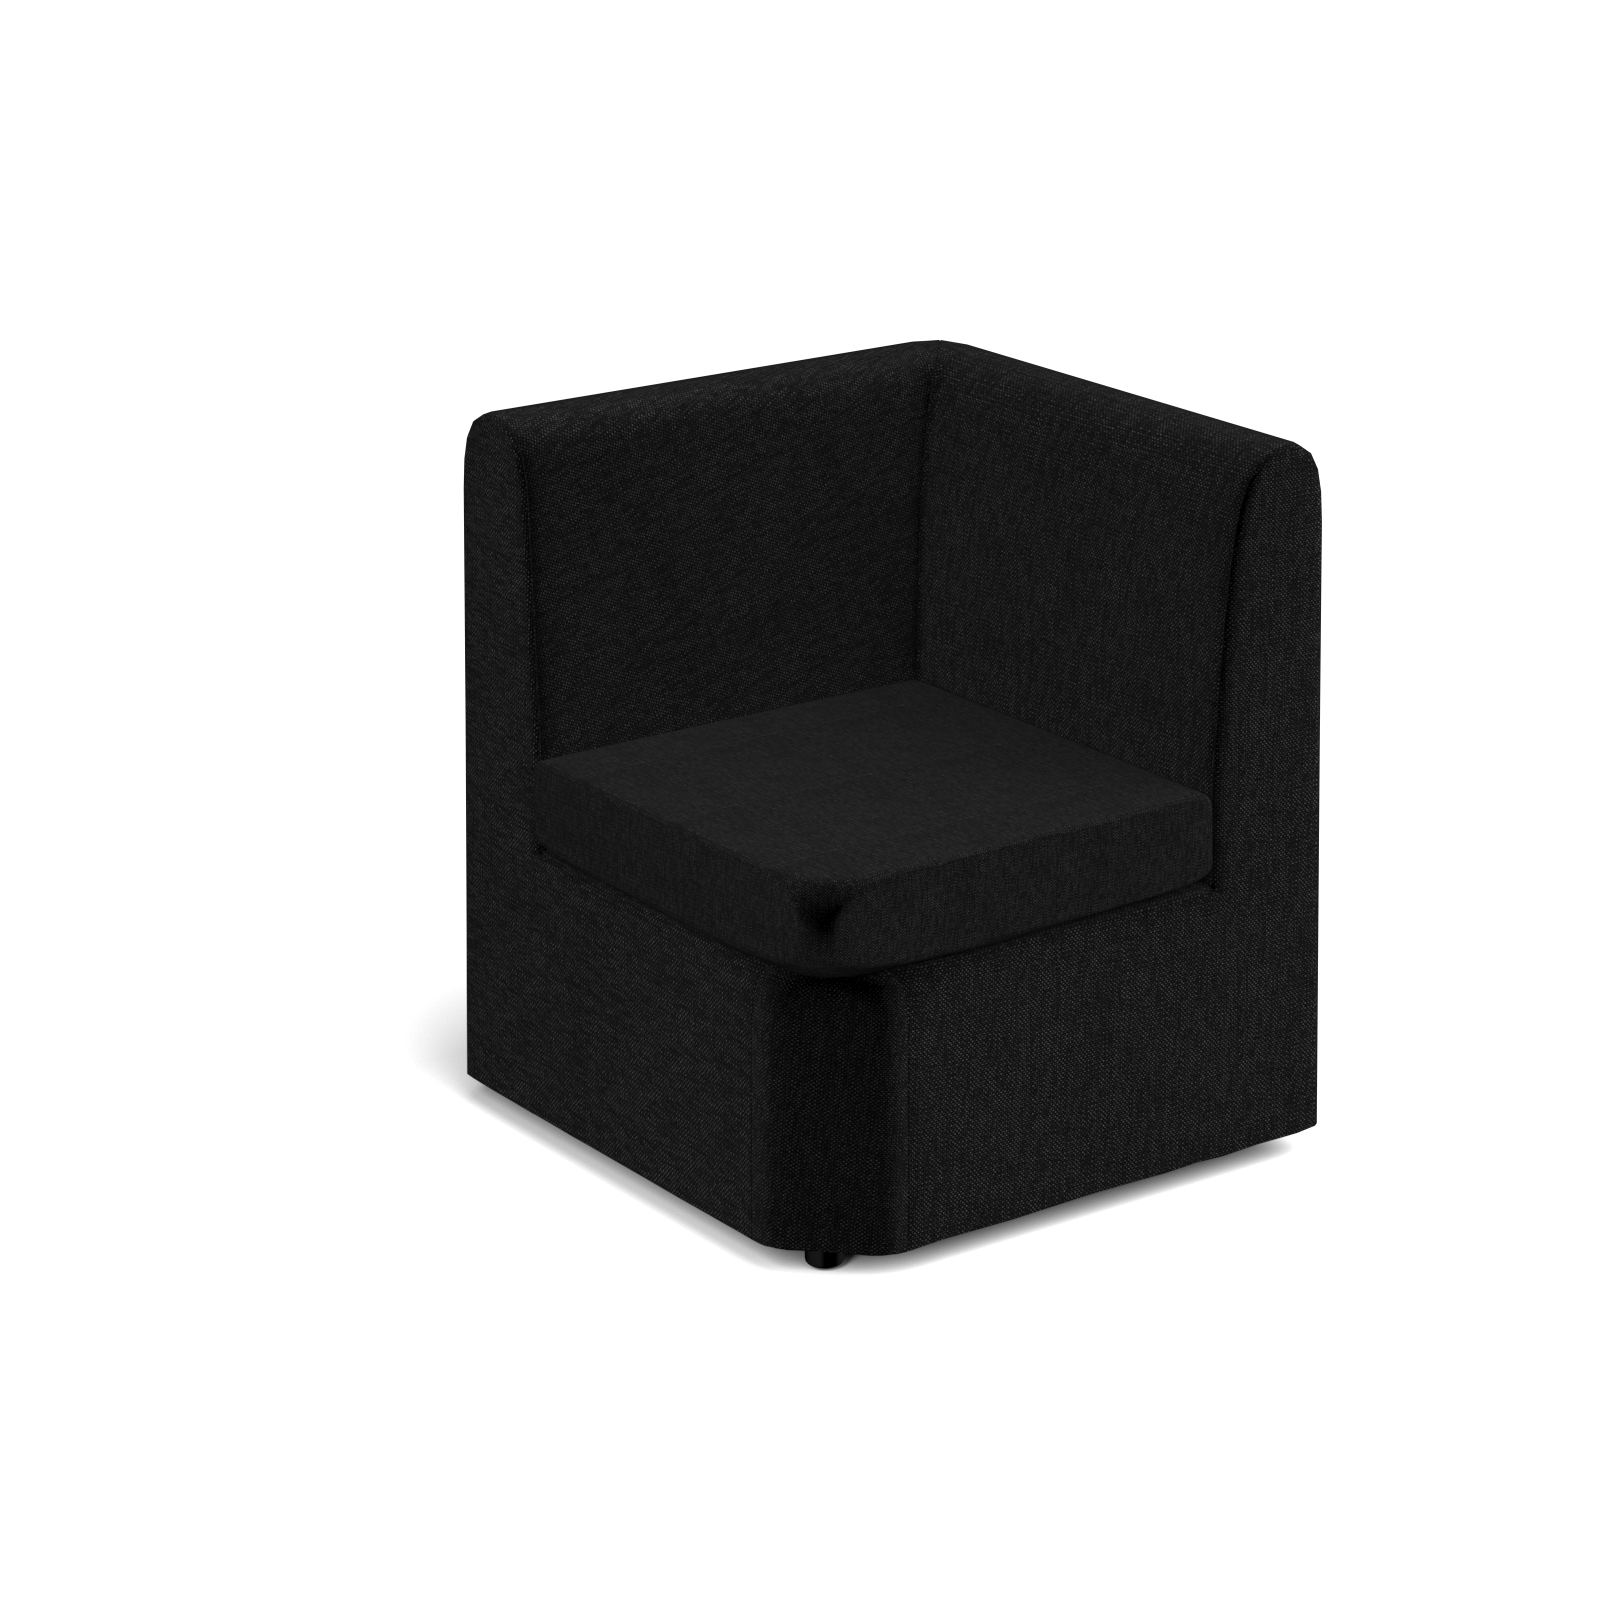 Reception Chairs Alto modular reception seating corner unit - charcoal